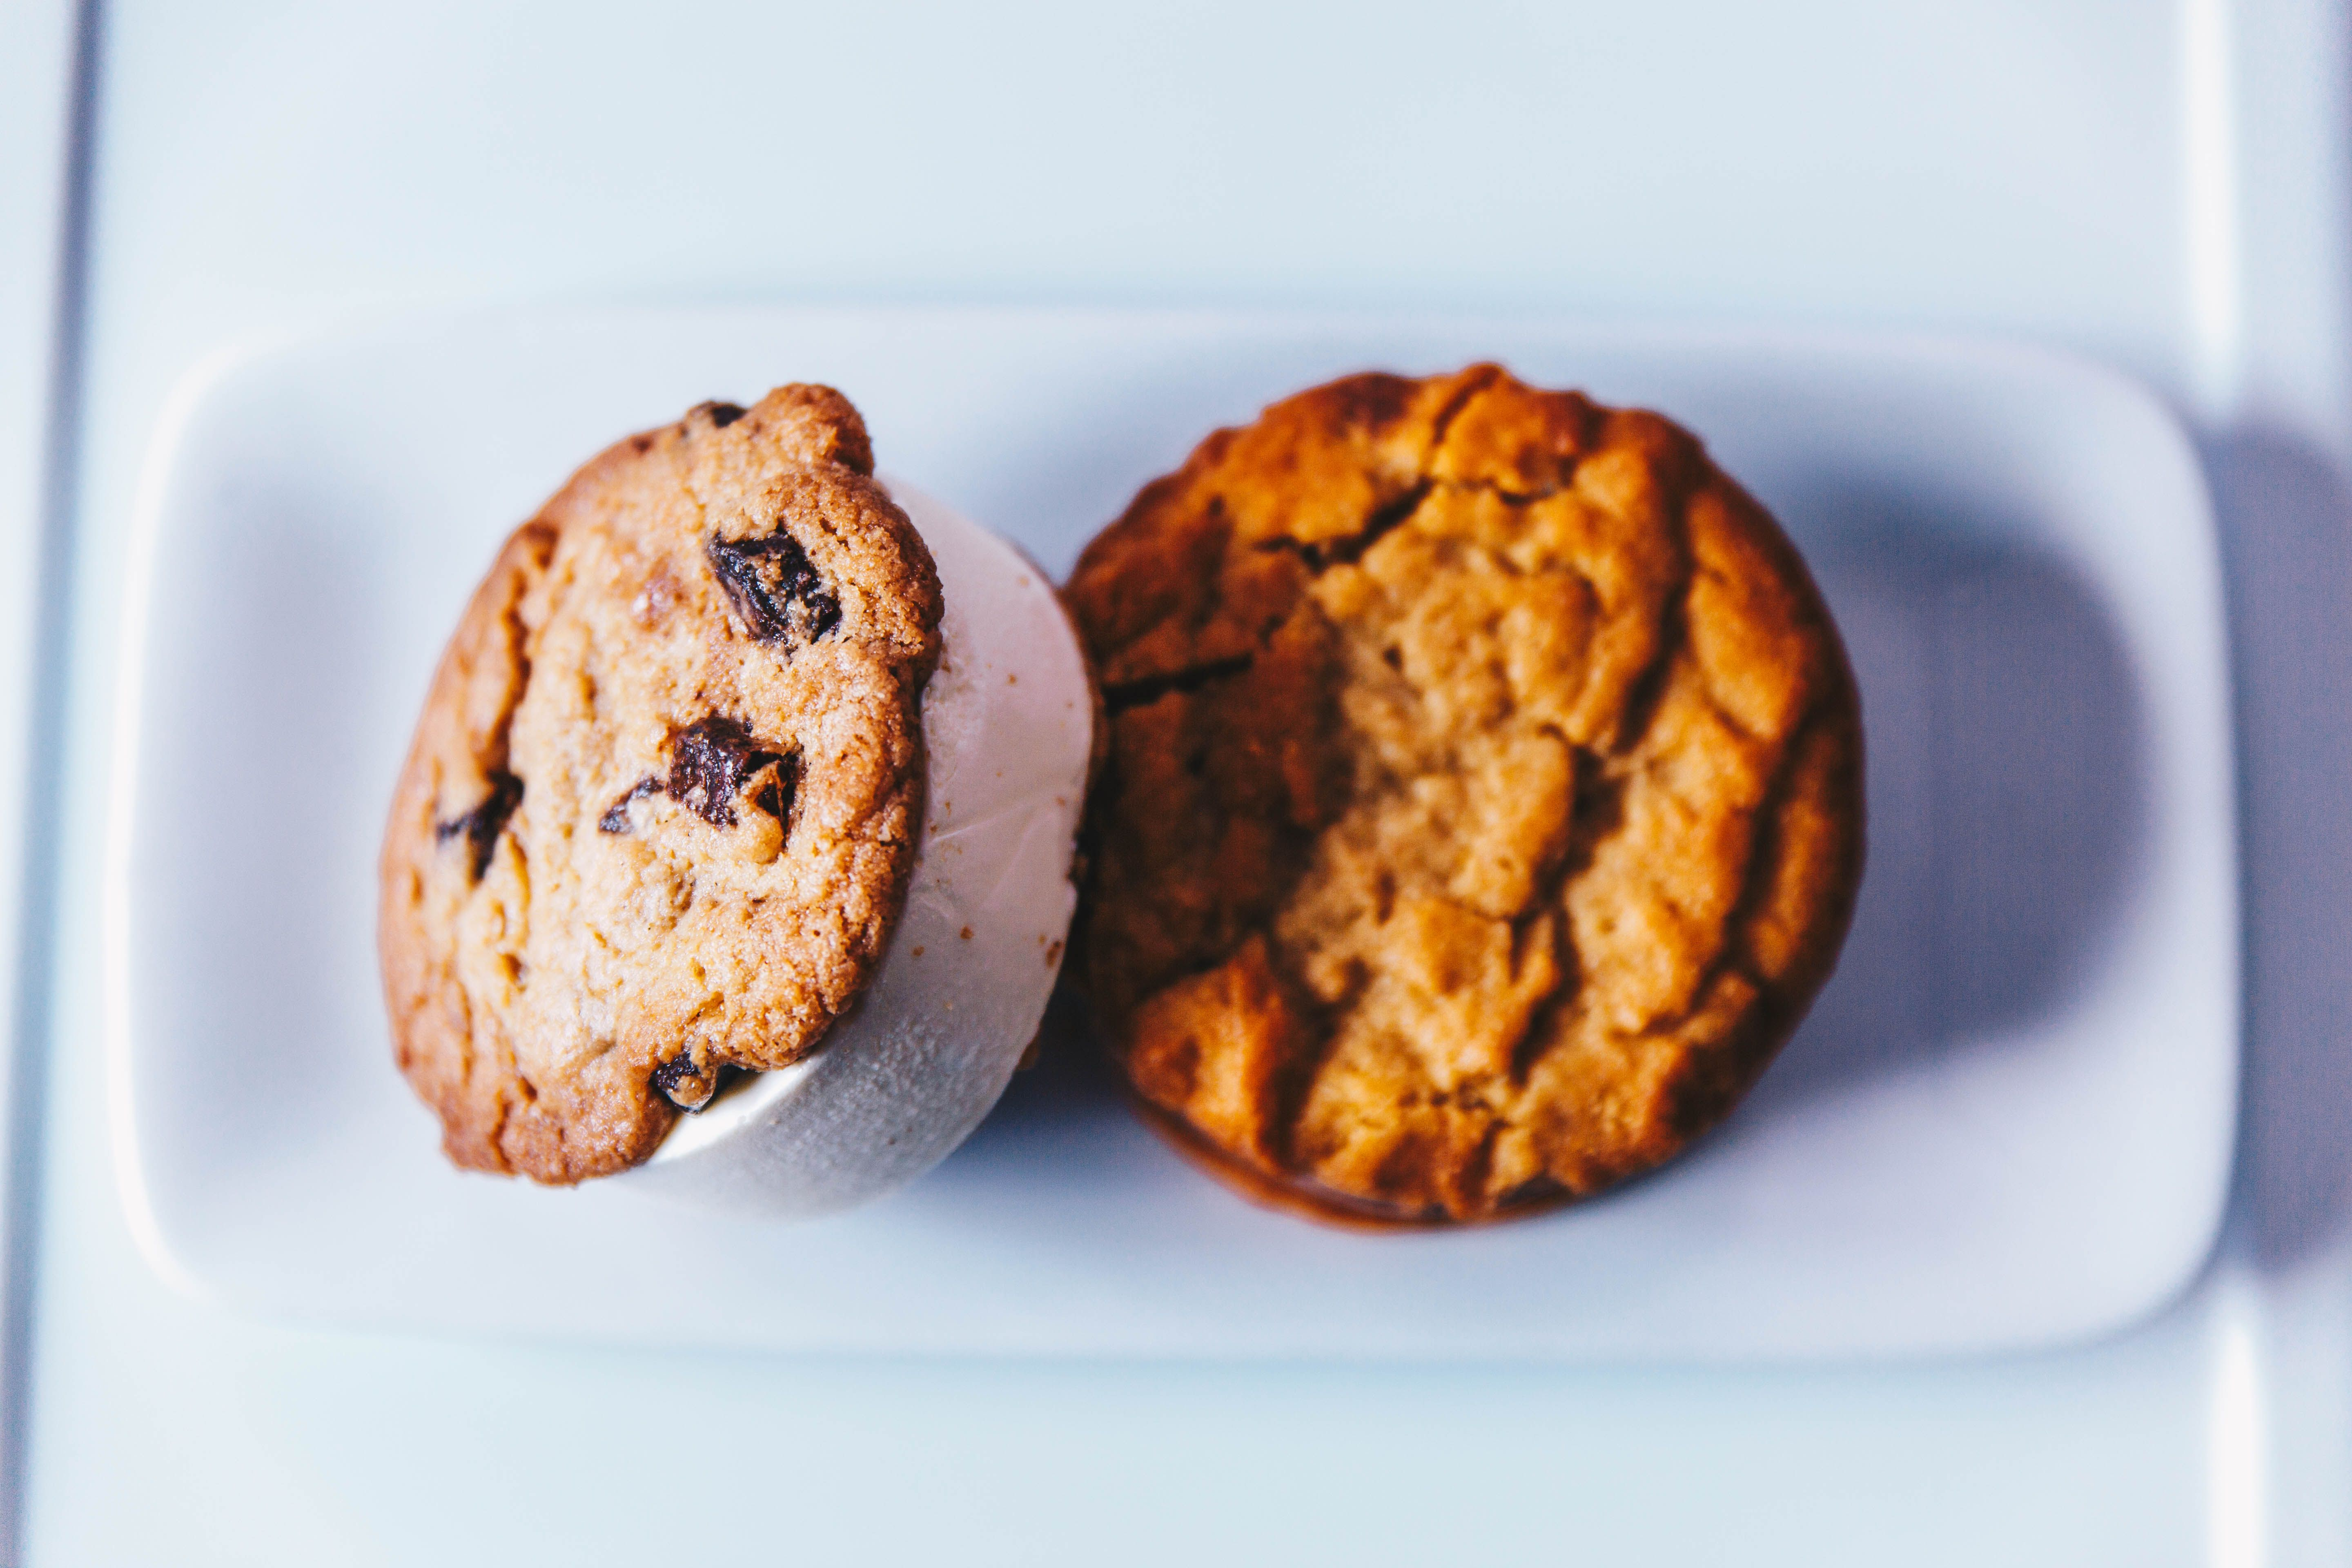 Ice Cream Sandwiches From High Road Craft Ice Cream Handcrafted